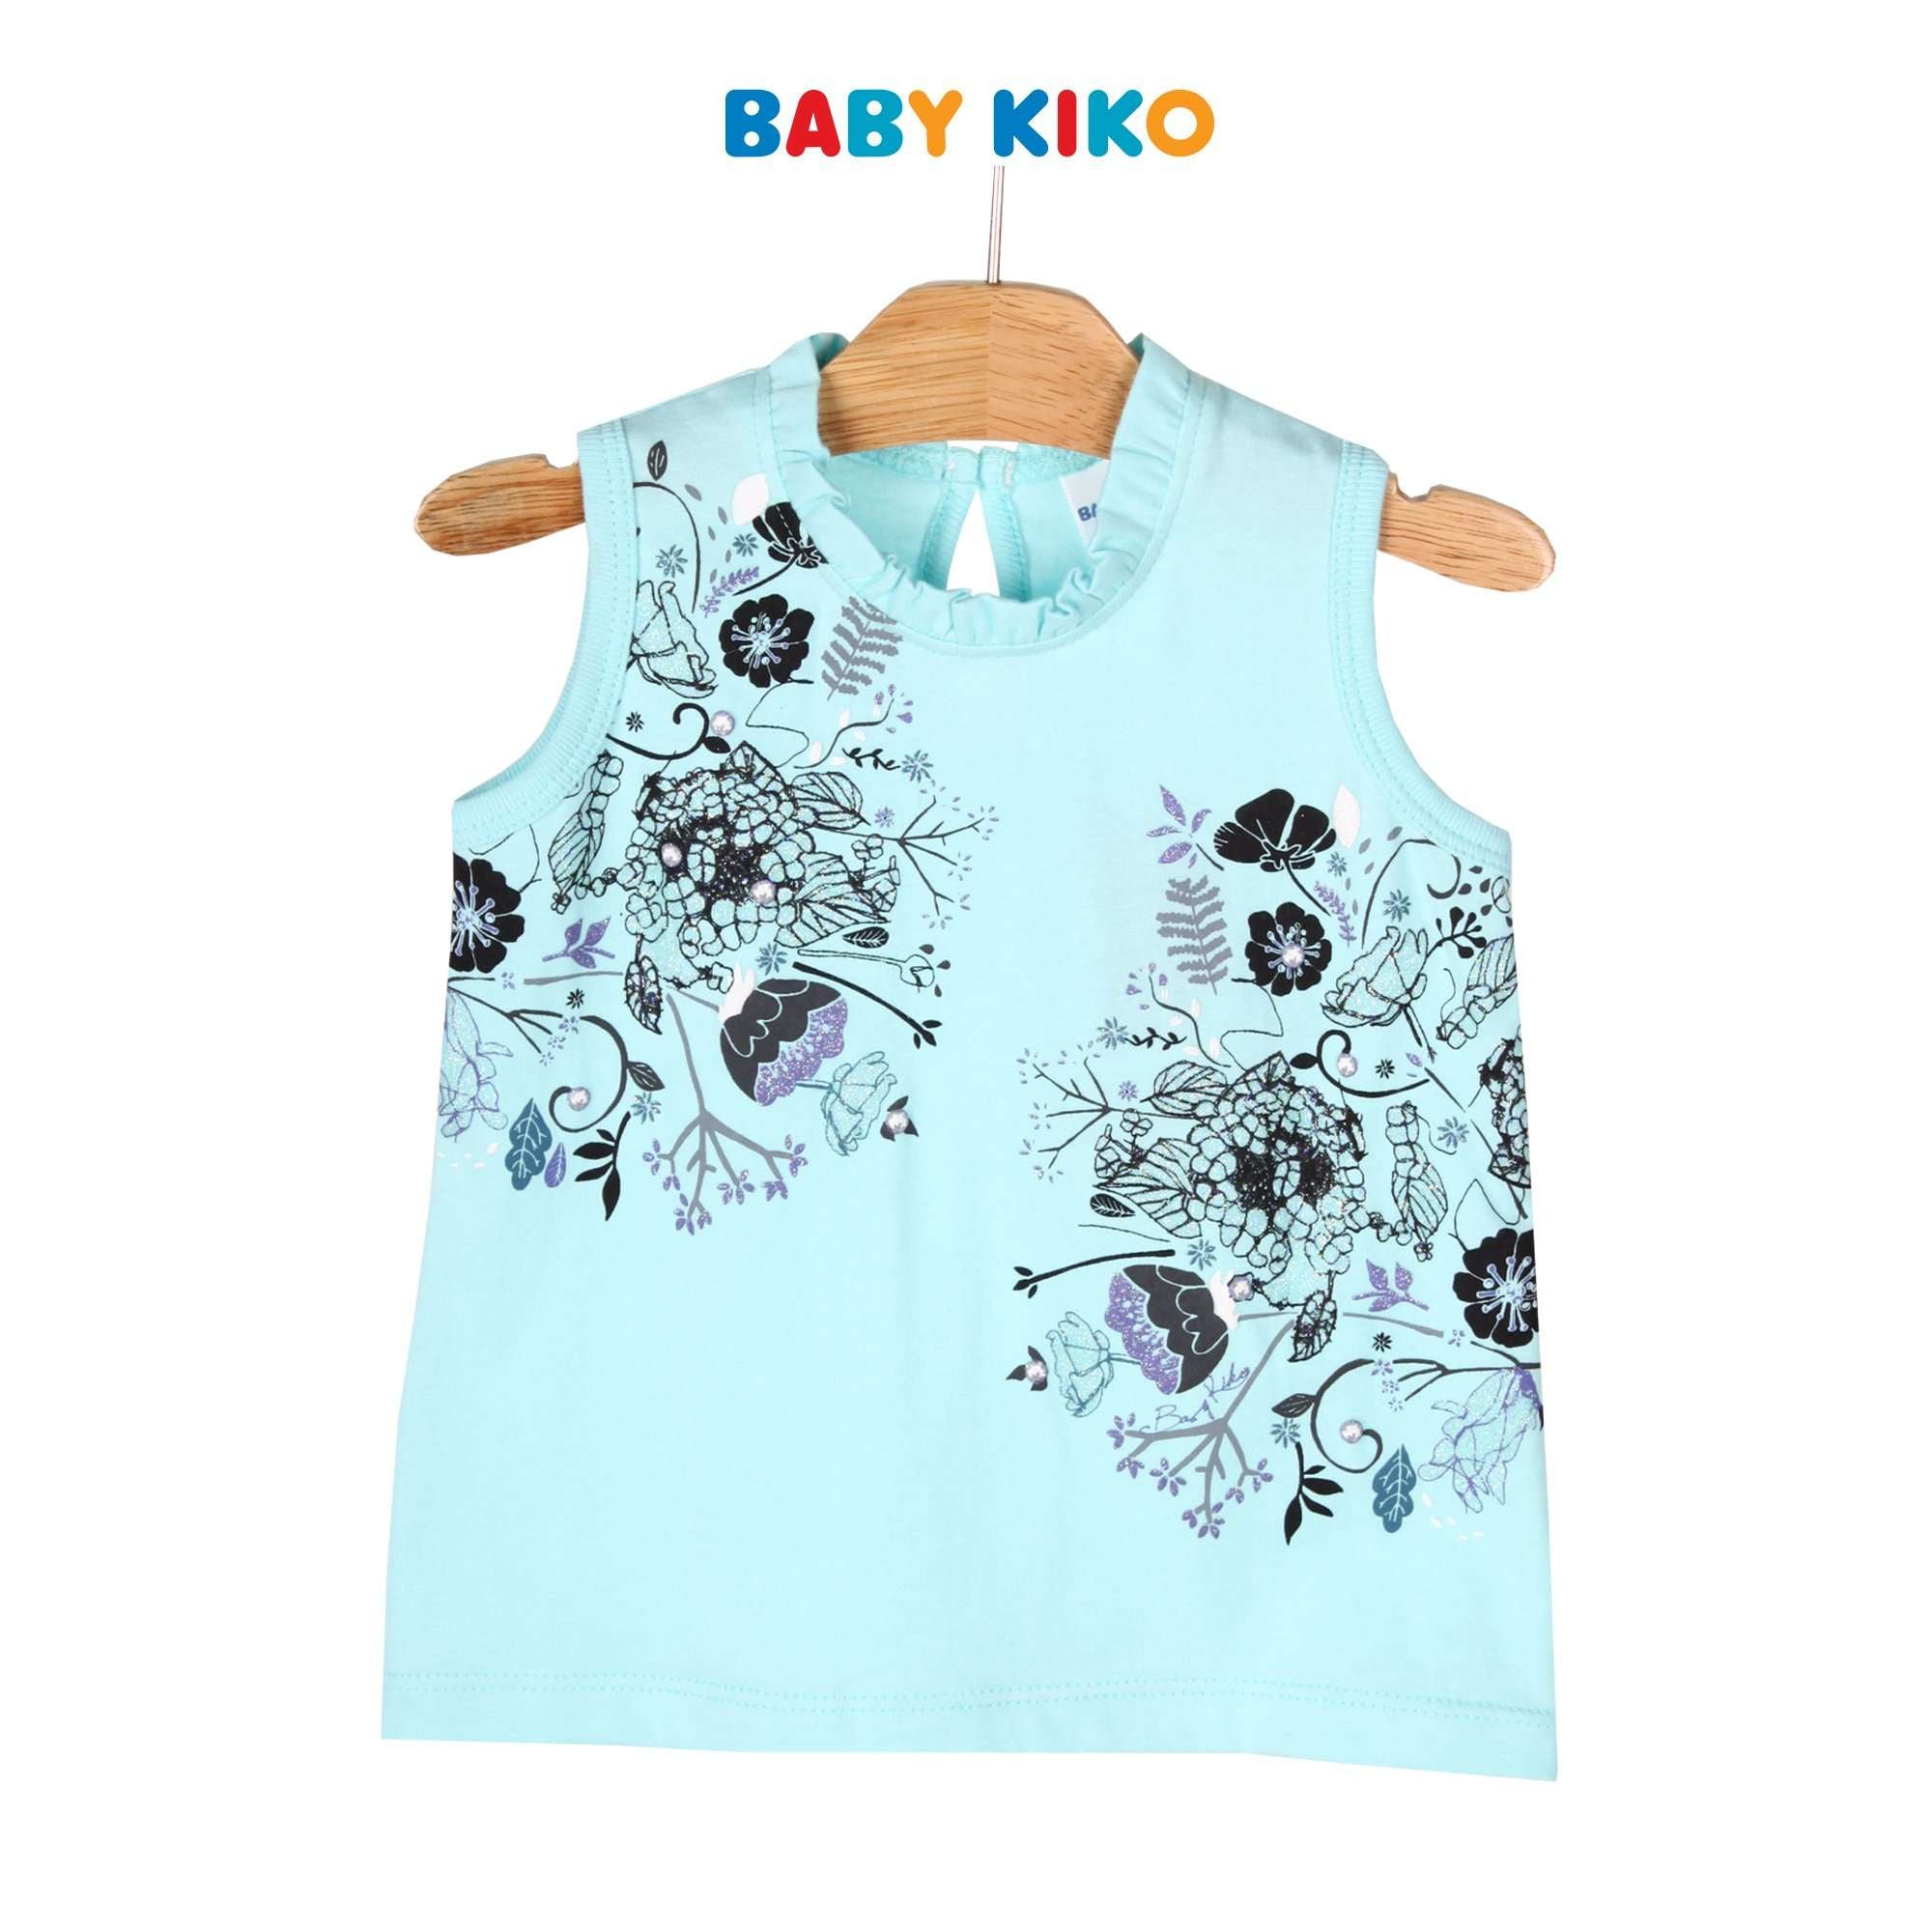 Baby KIKO Toddler Girl Sleeveless Tee 335131-101 : Buy Baby KIKO online at CMG.MY